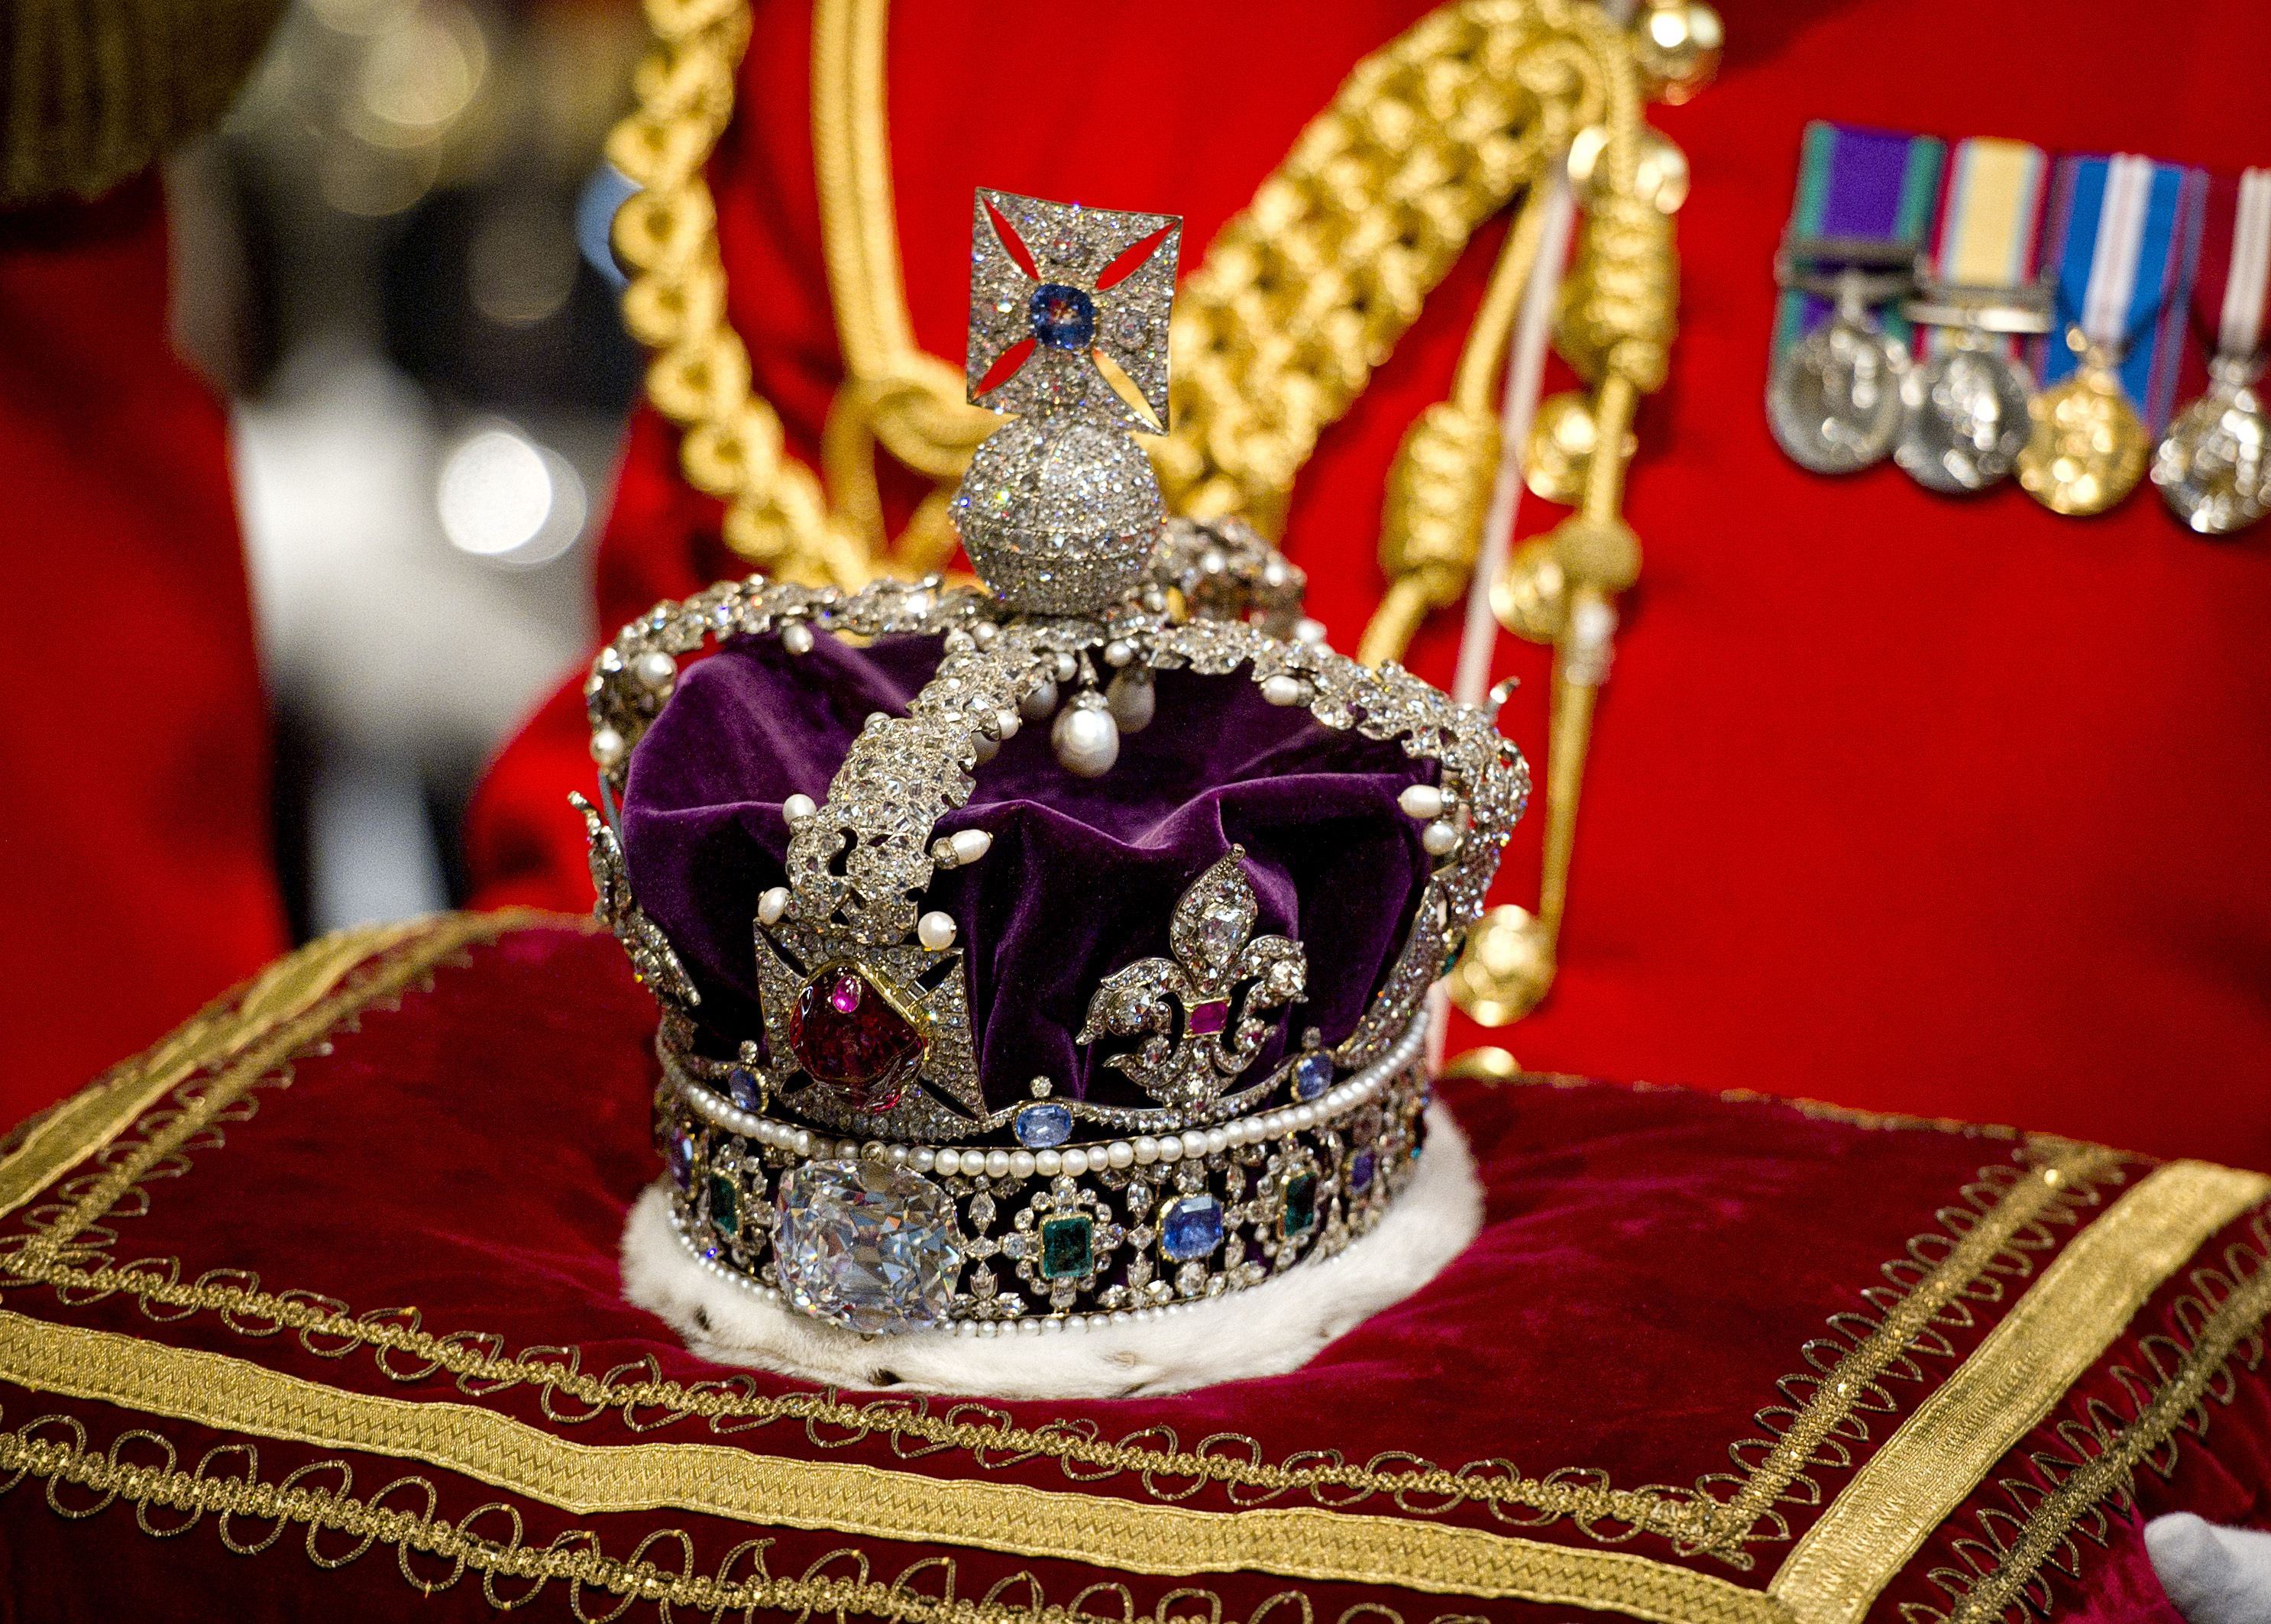 British Royals Hid Crown Jewels From Nazis in a Cracker Box